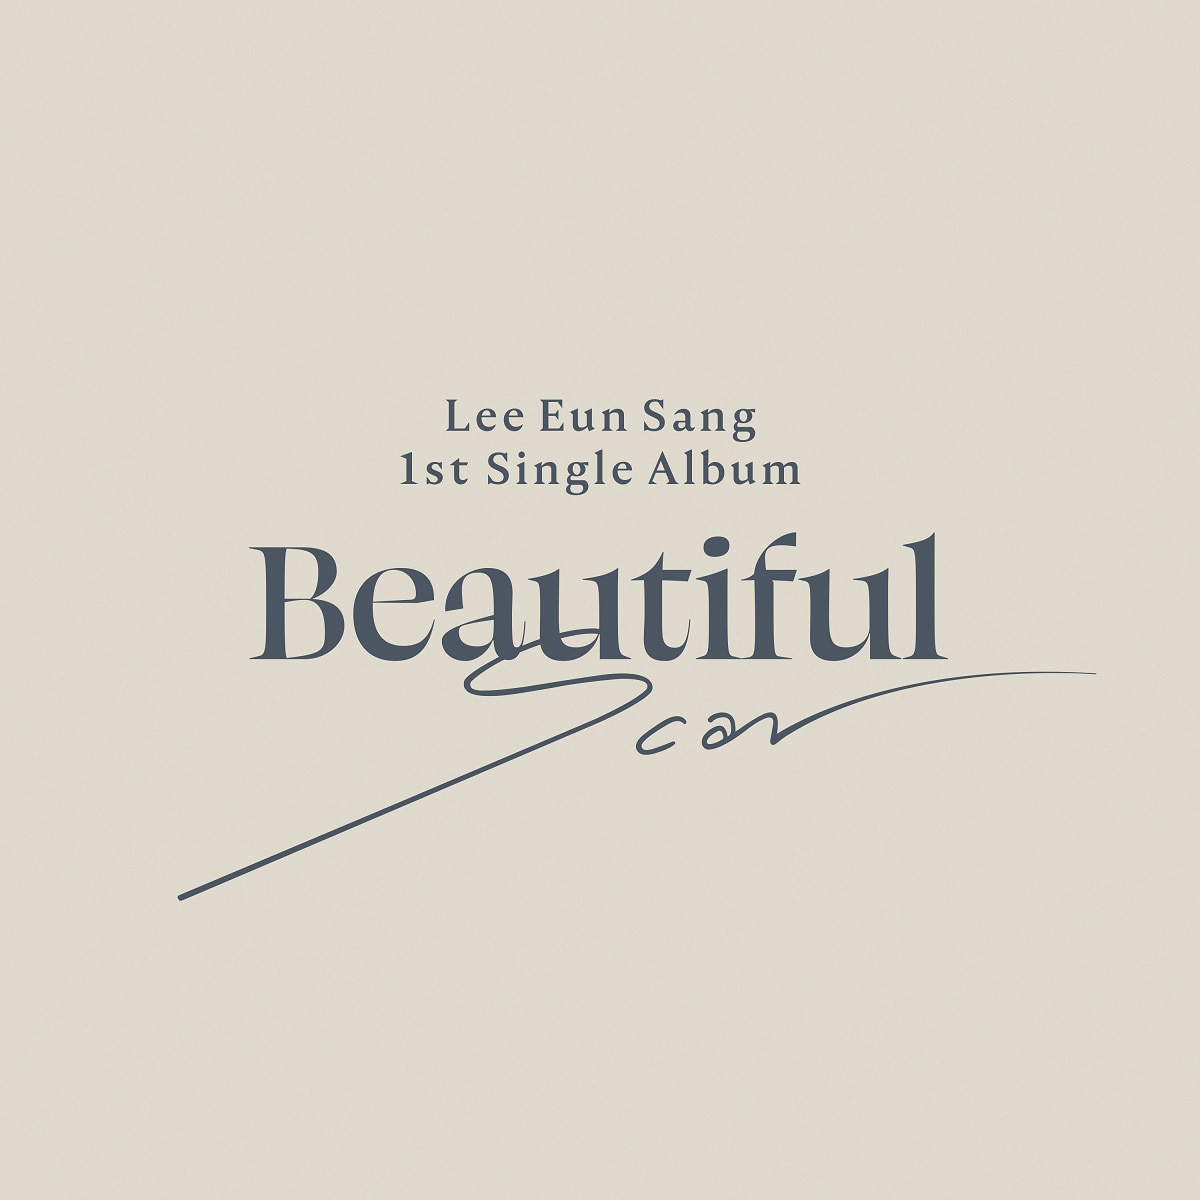 세트ㅣ이은상 - BEAUTIFUL SCAR (1ST 싱글앨범) [Beautiful + Scar Ver.]